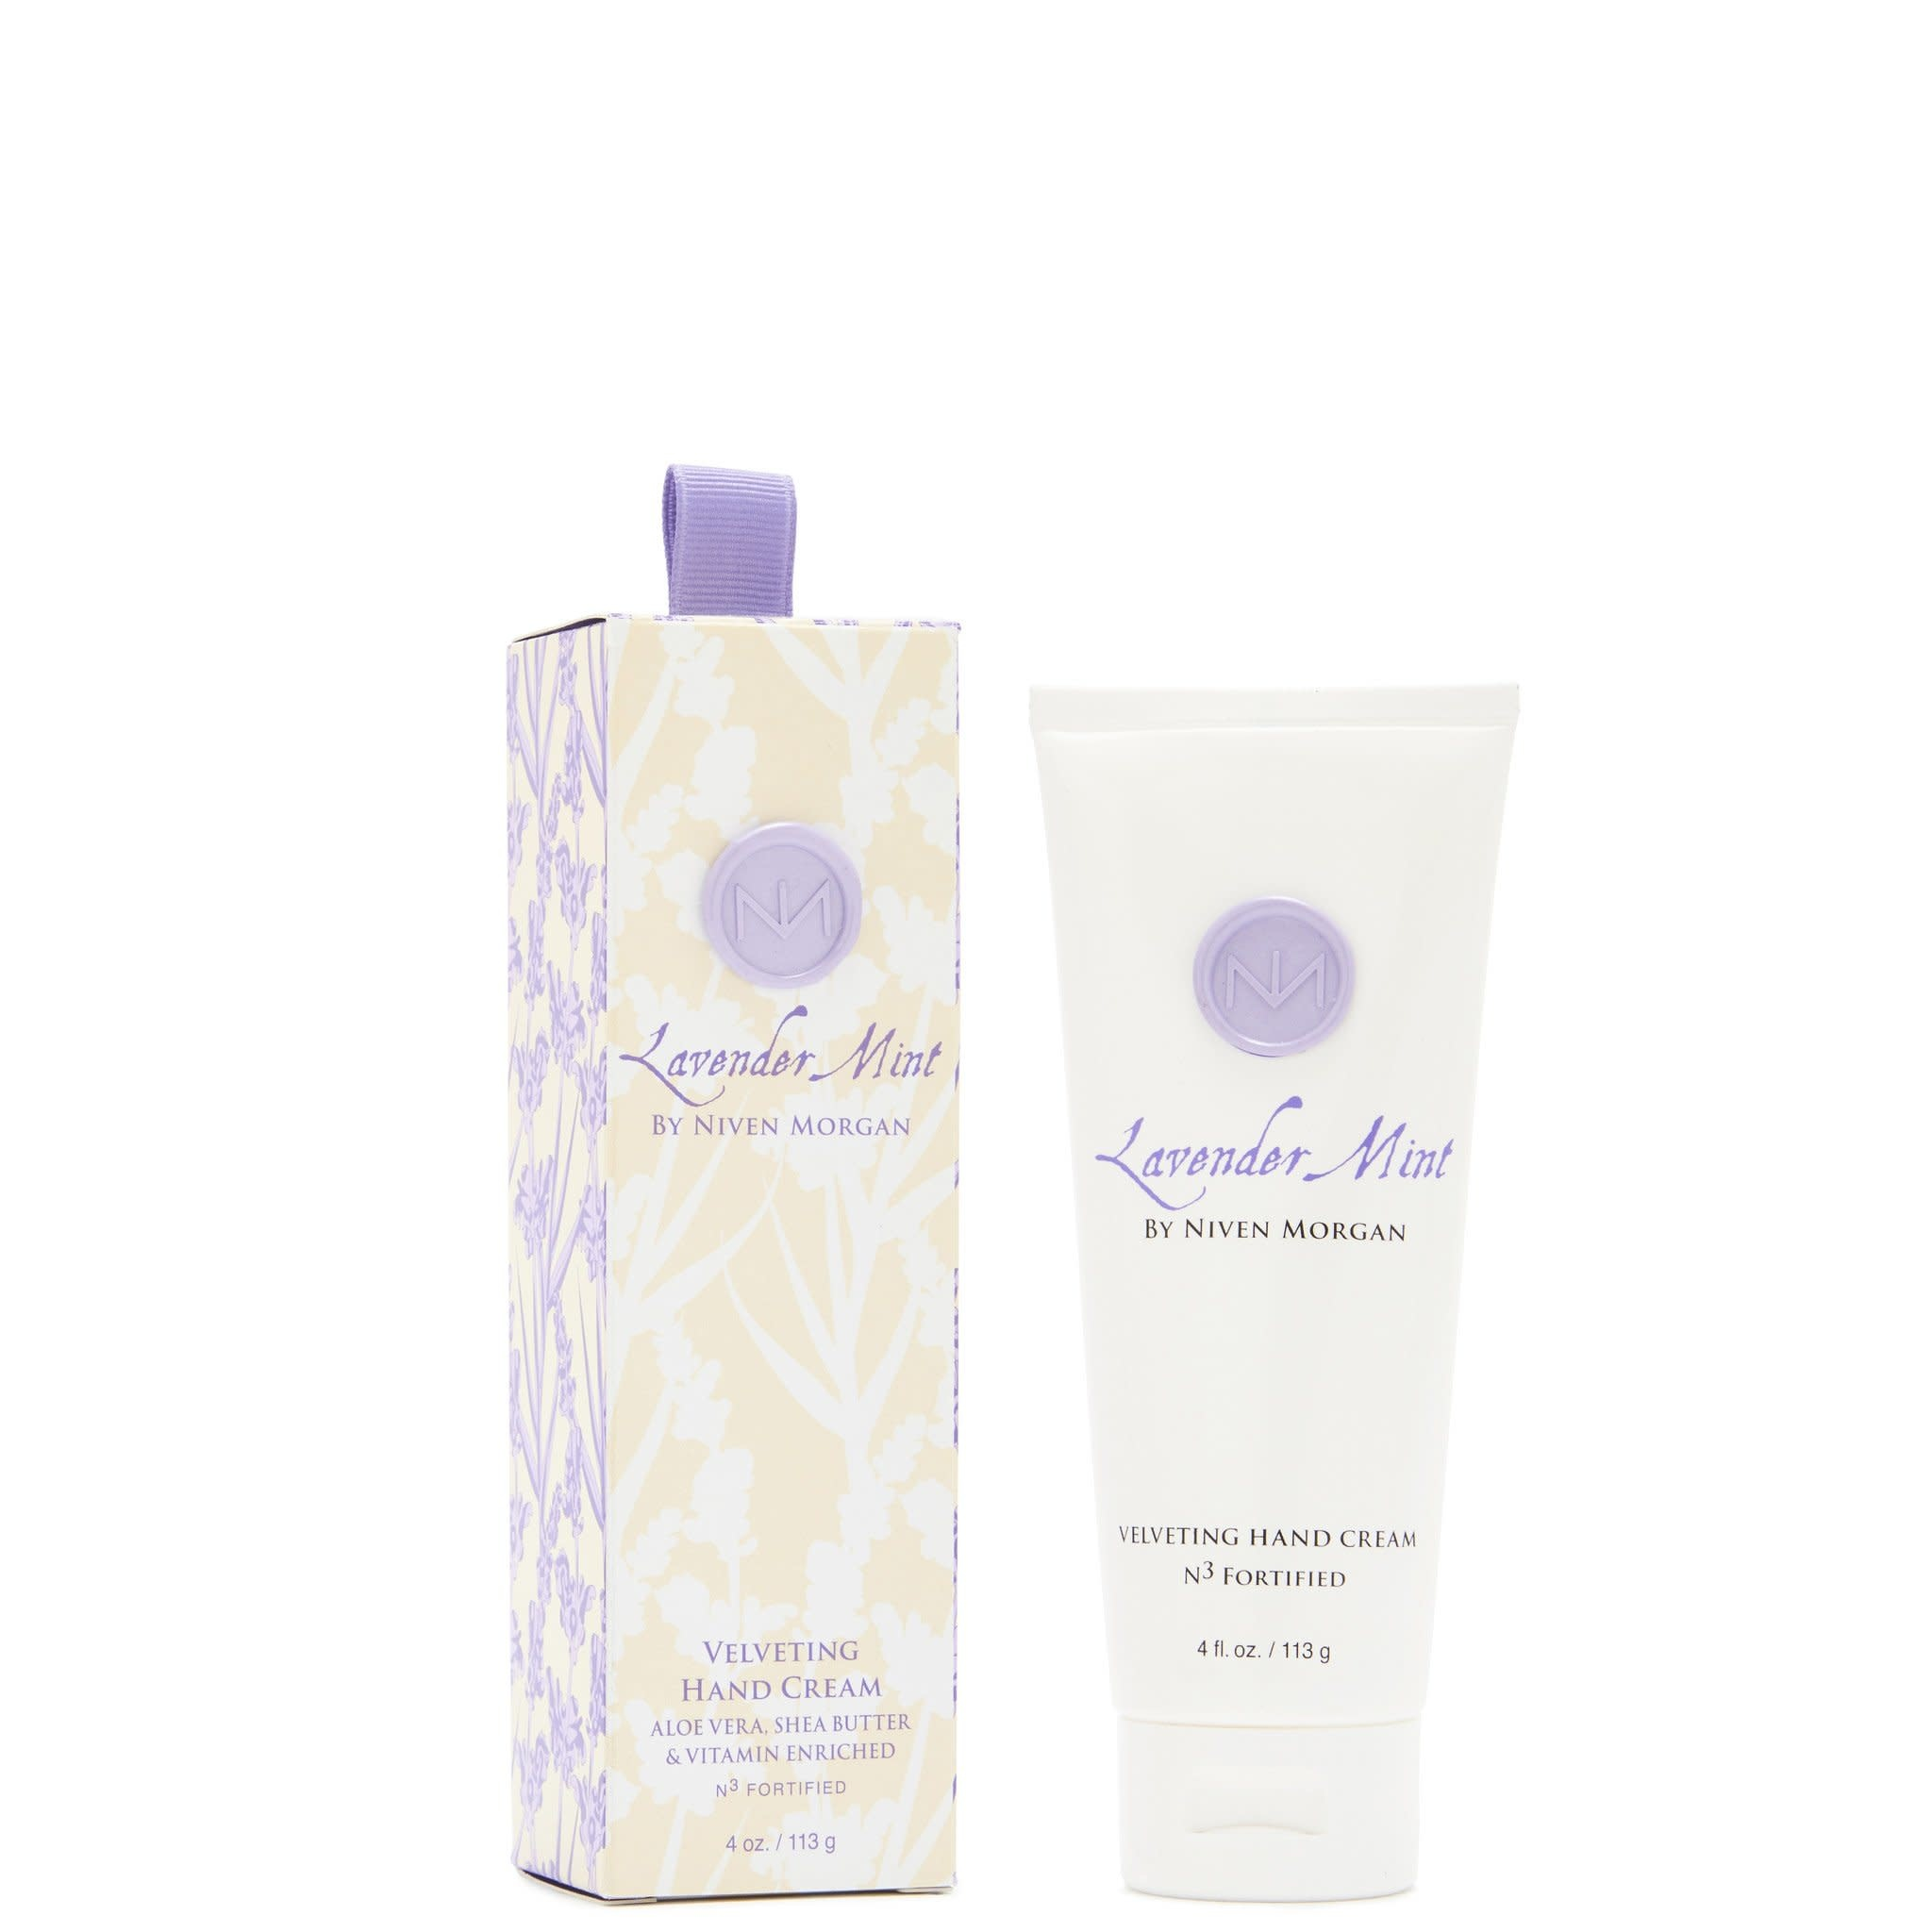 Niven Morgan Lavender Mint 4oz Hand Cream